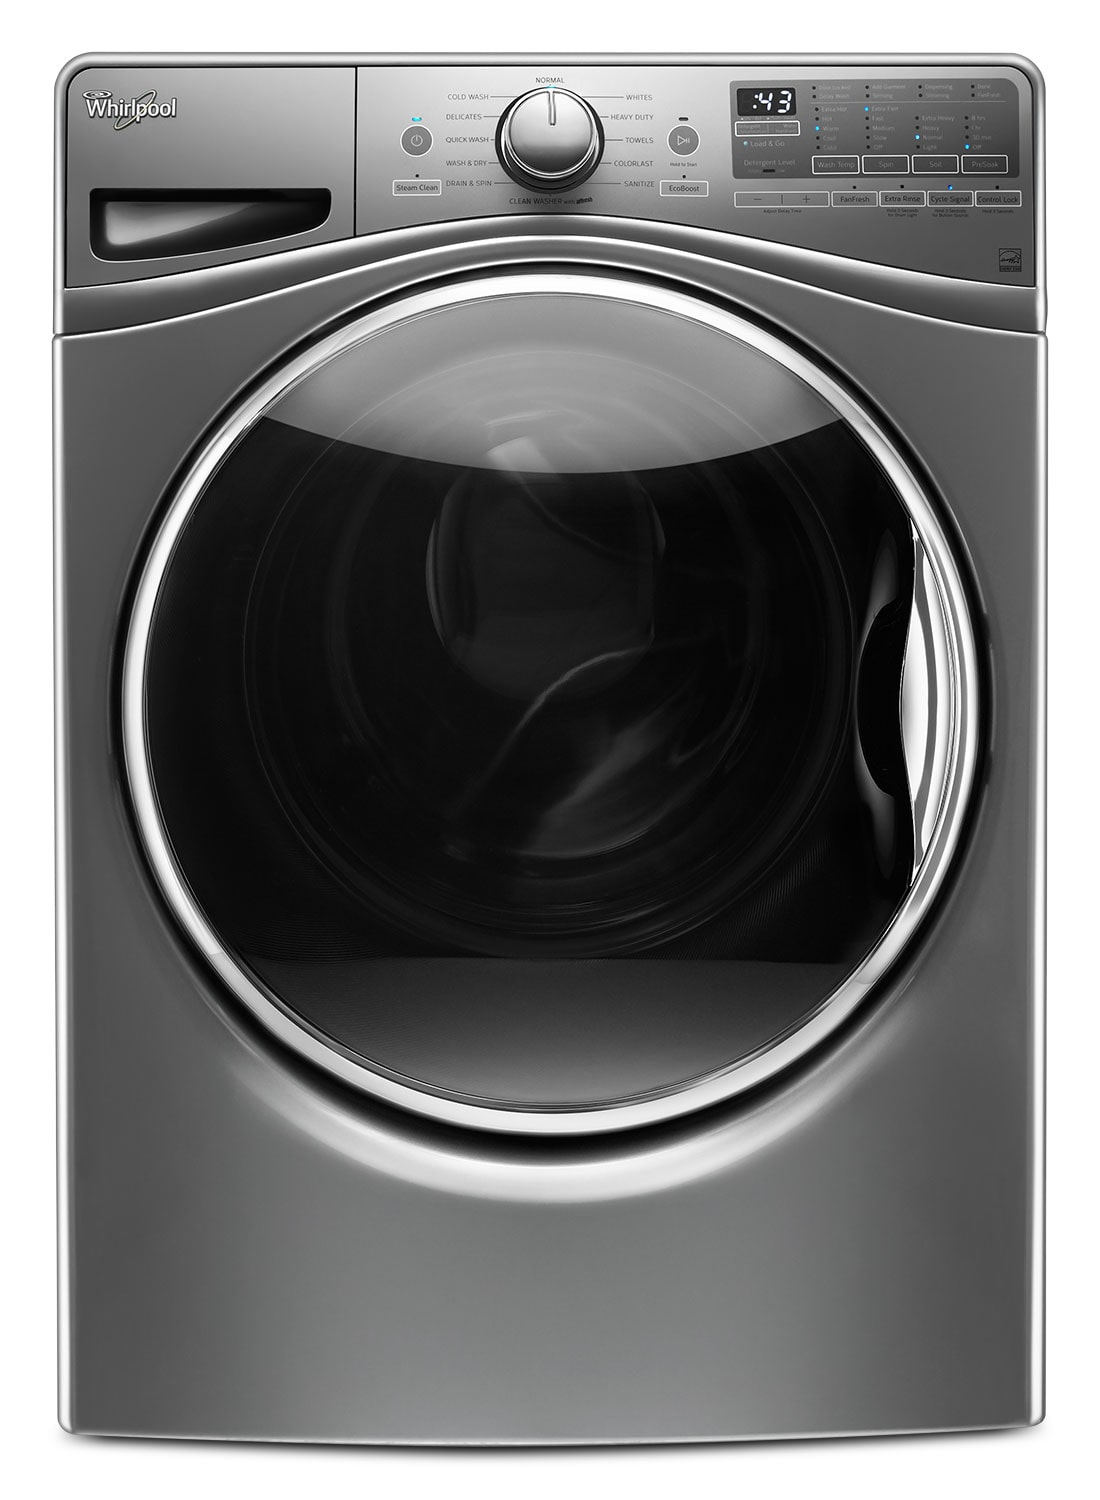 Whirlpool Chrome Shadow Front-Load Washer (4.8 Cu. Ft. IEC) - WFW9290FC